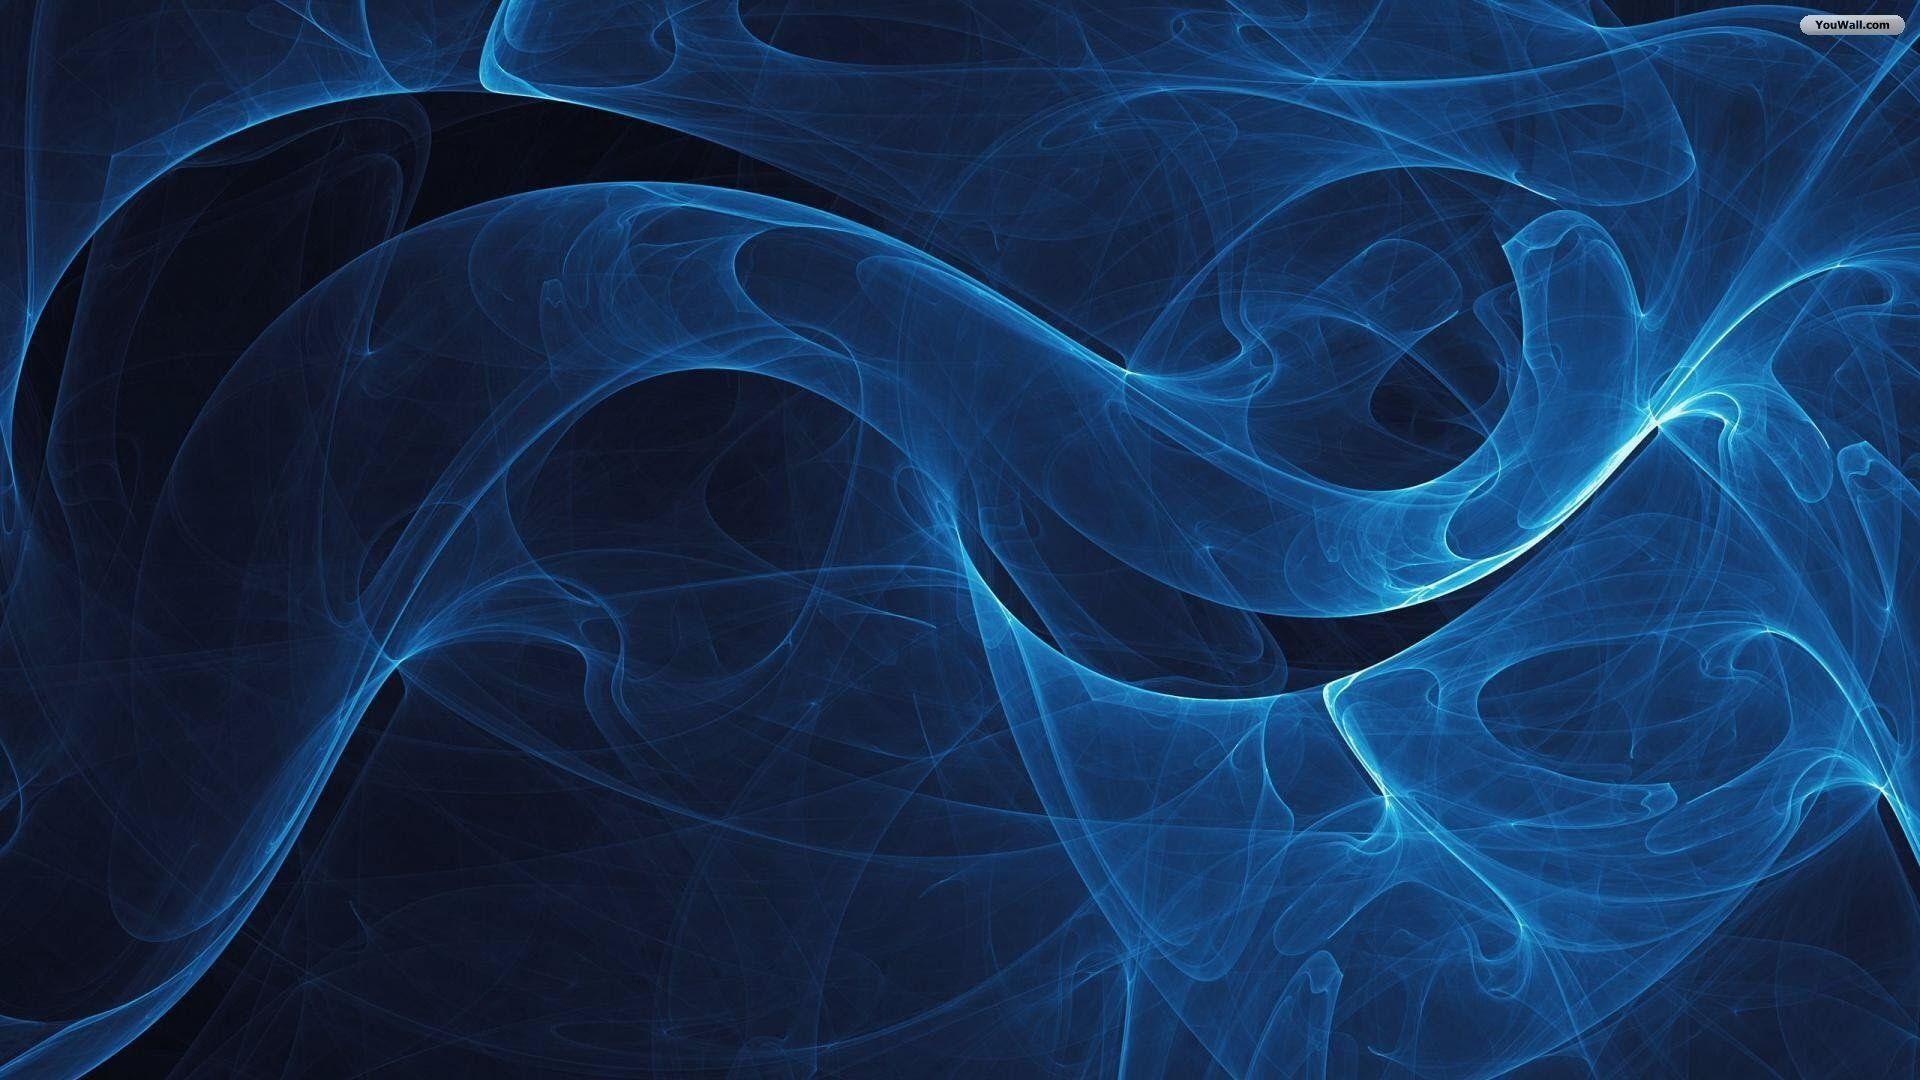 Res: 1920x1080, Blue Abstract Wallpaper Hd 1080P 12 HD Wallpapers   aduphoto.